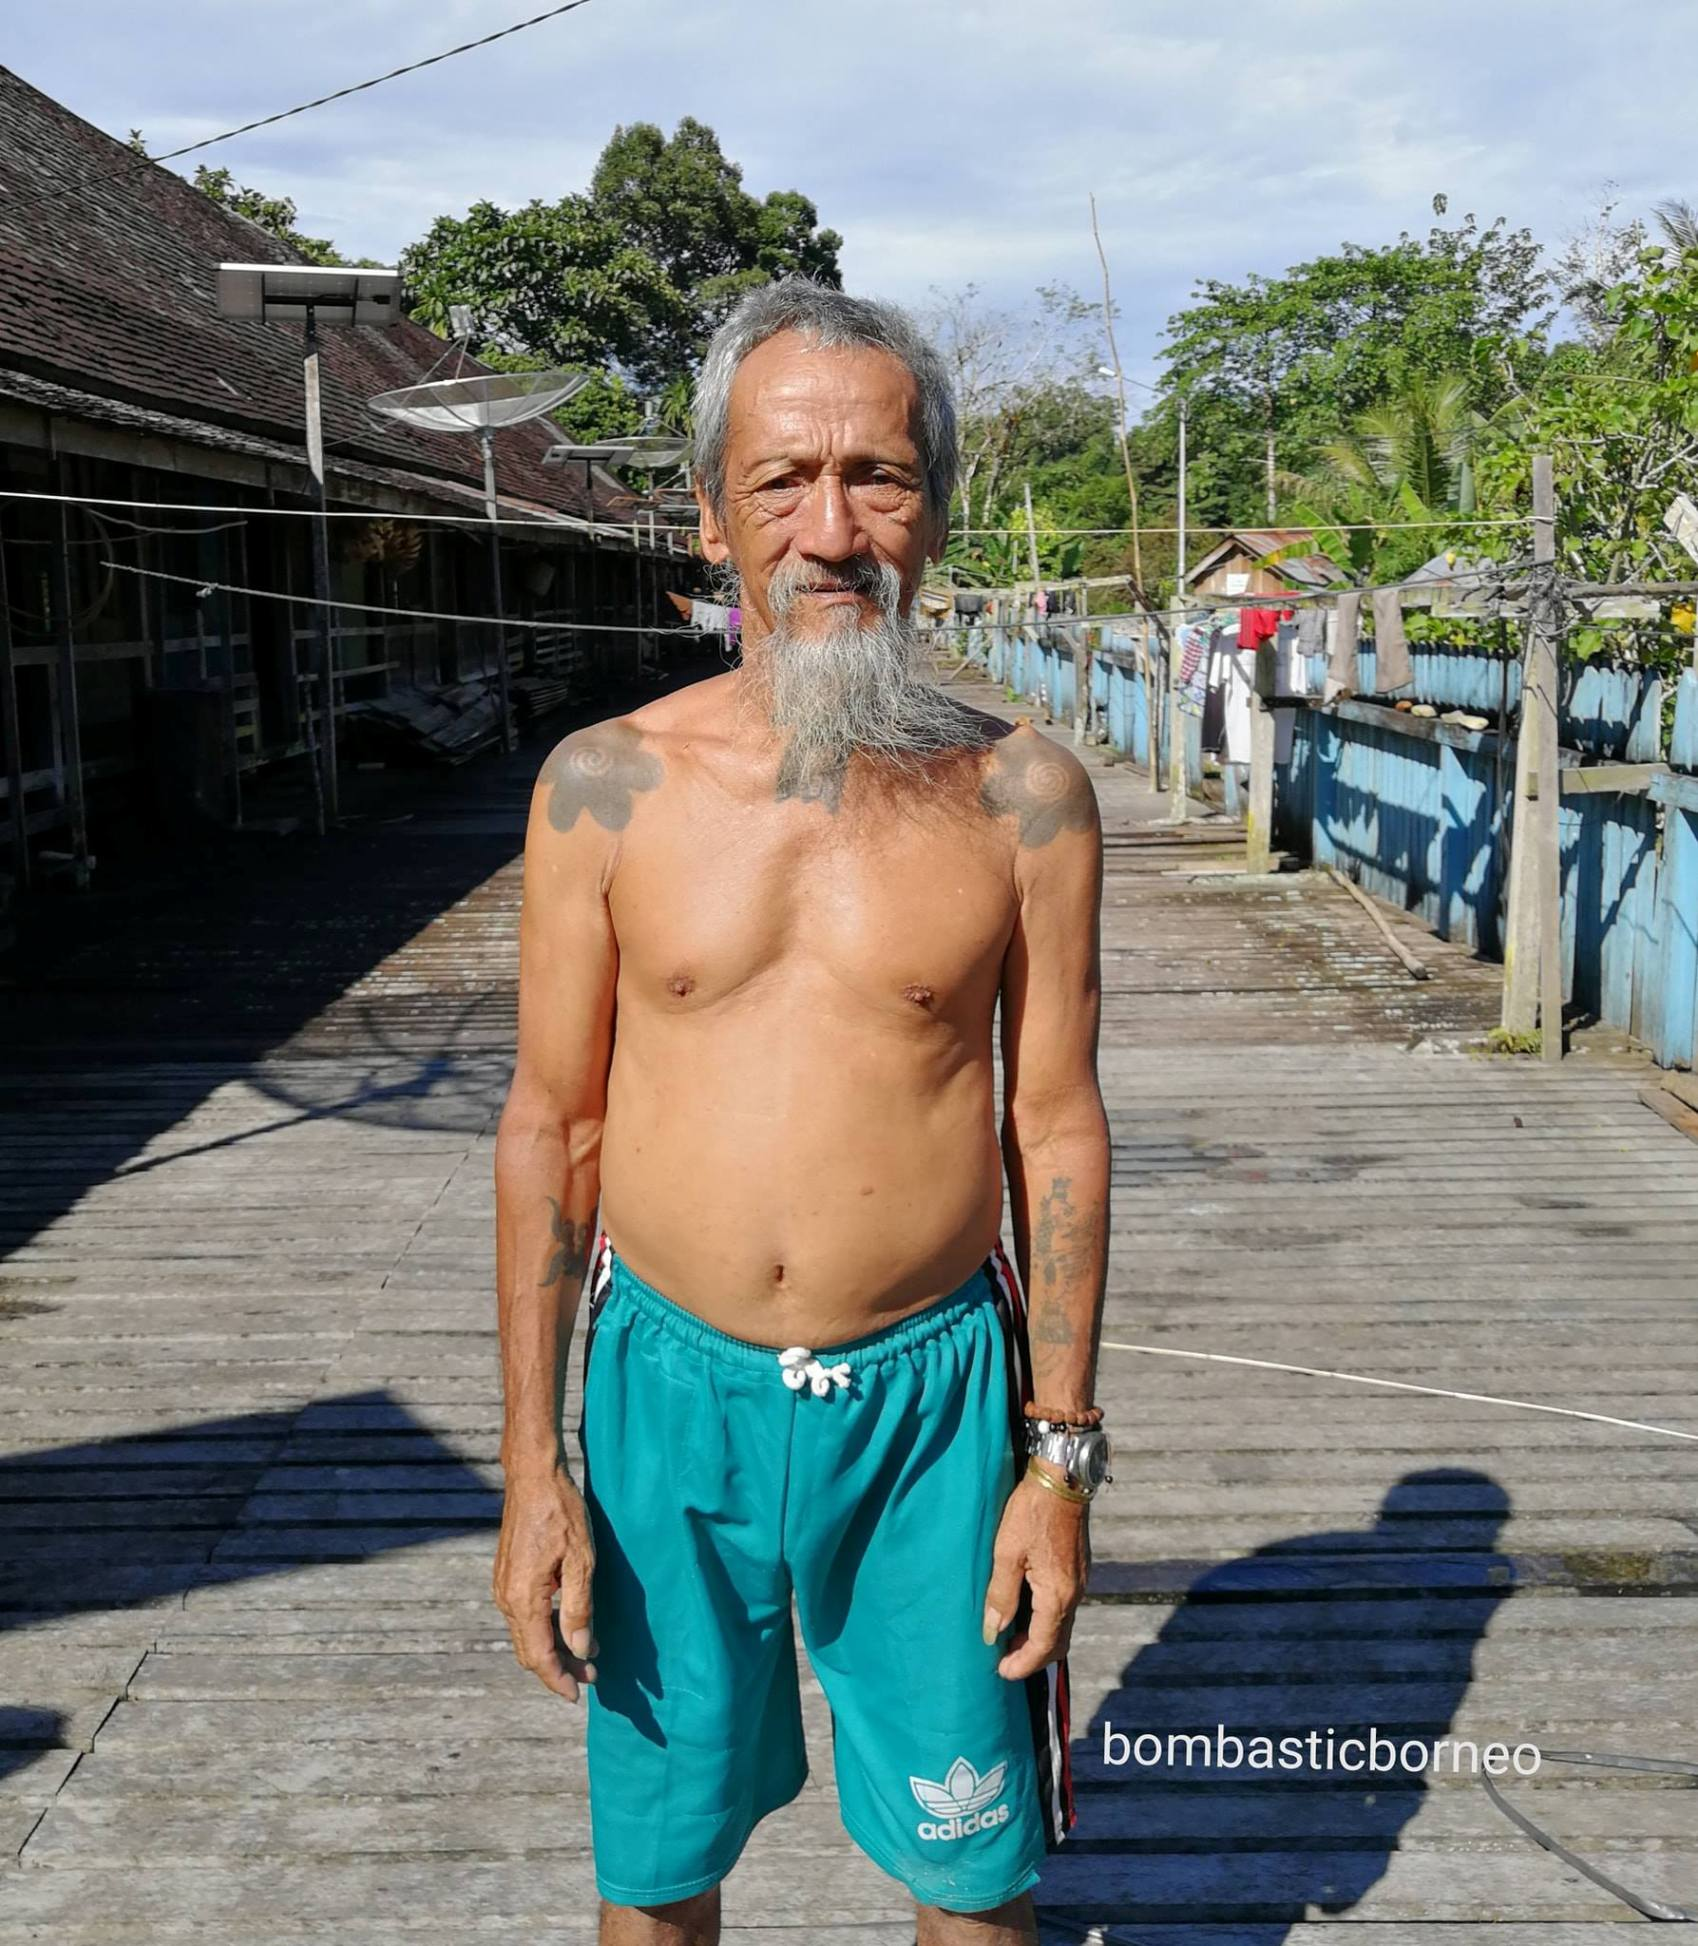 authentic, Indonesia, Kalimantan Barat, Embaloh Hulu, Suku Dayak, indigenous, native, tribe, Tourism, travel guide, cross border, Borneo, 探索婆罗洲游踪, 印尼西加里曼丹, 原住民伊班族长屋